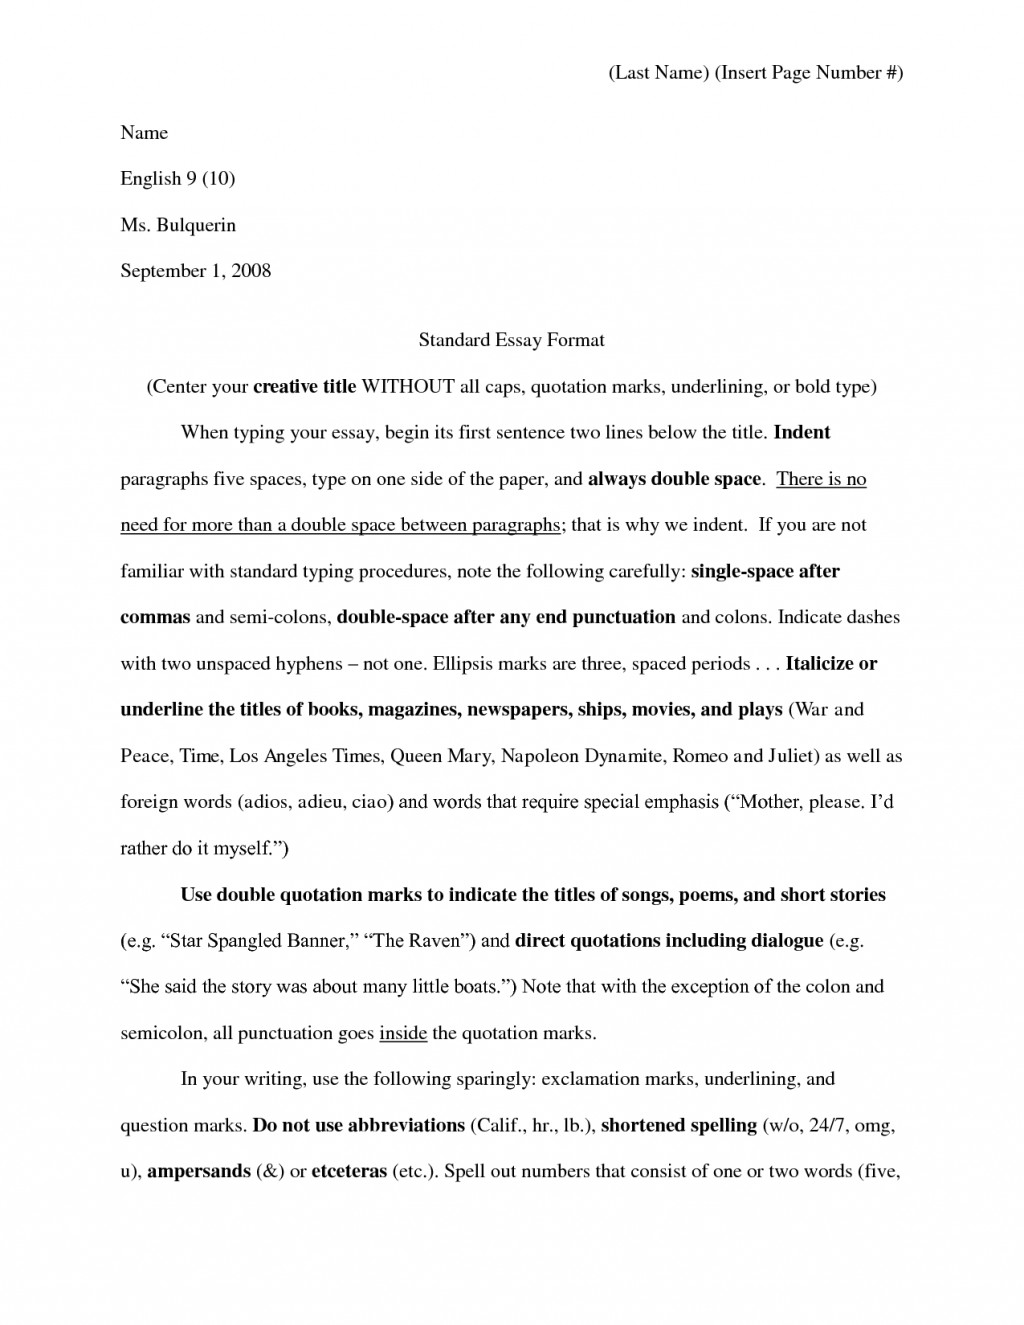 007 Essay Example Singular 5 Paragraph Outline High School 6th Grade Topics For 5th Large